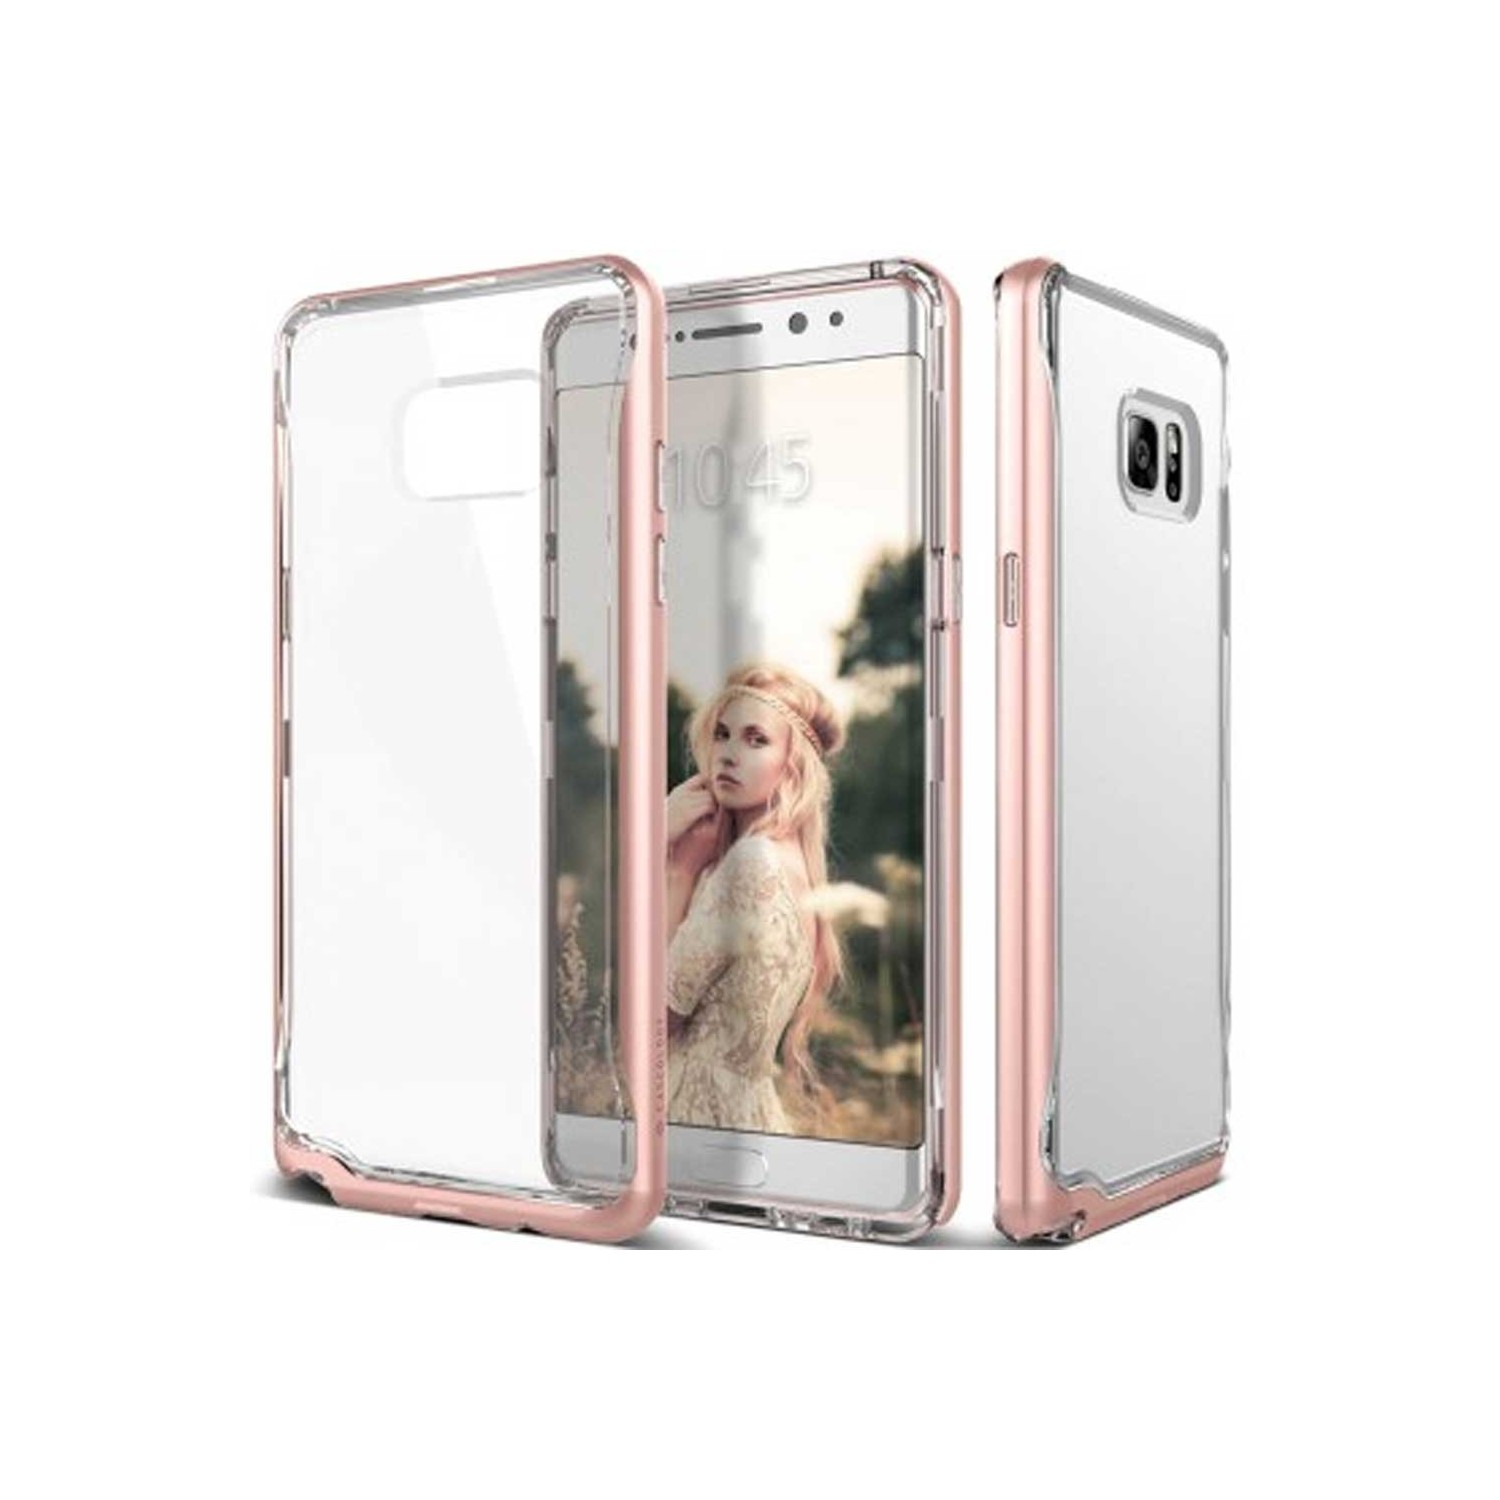 Case - CASEOLOGY Samsung Note 7 - Skyfall - Clear Rose Gold